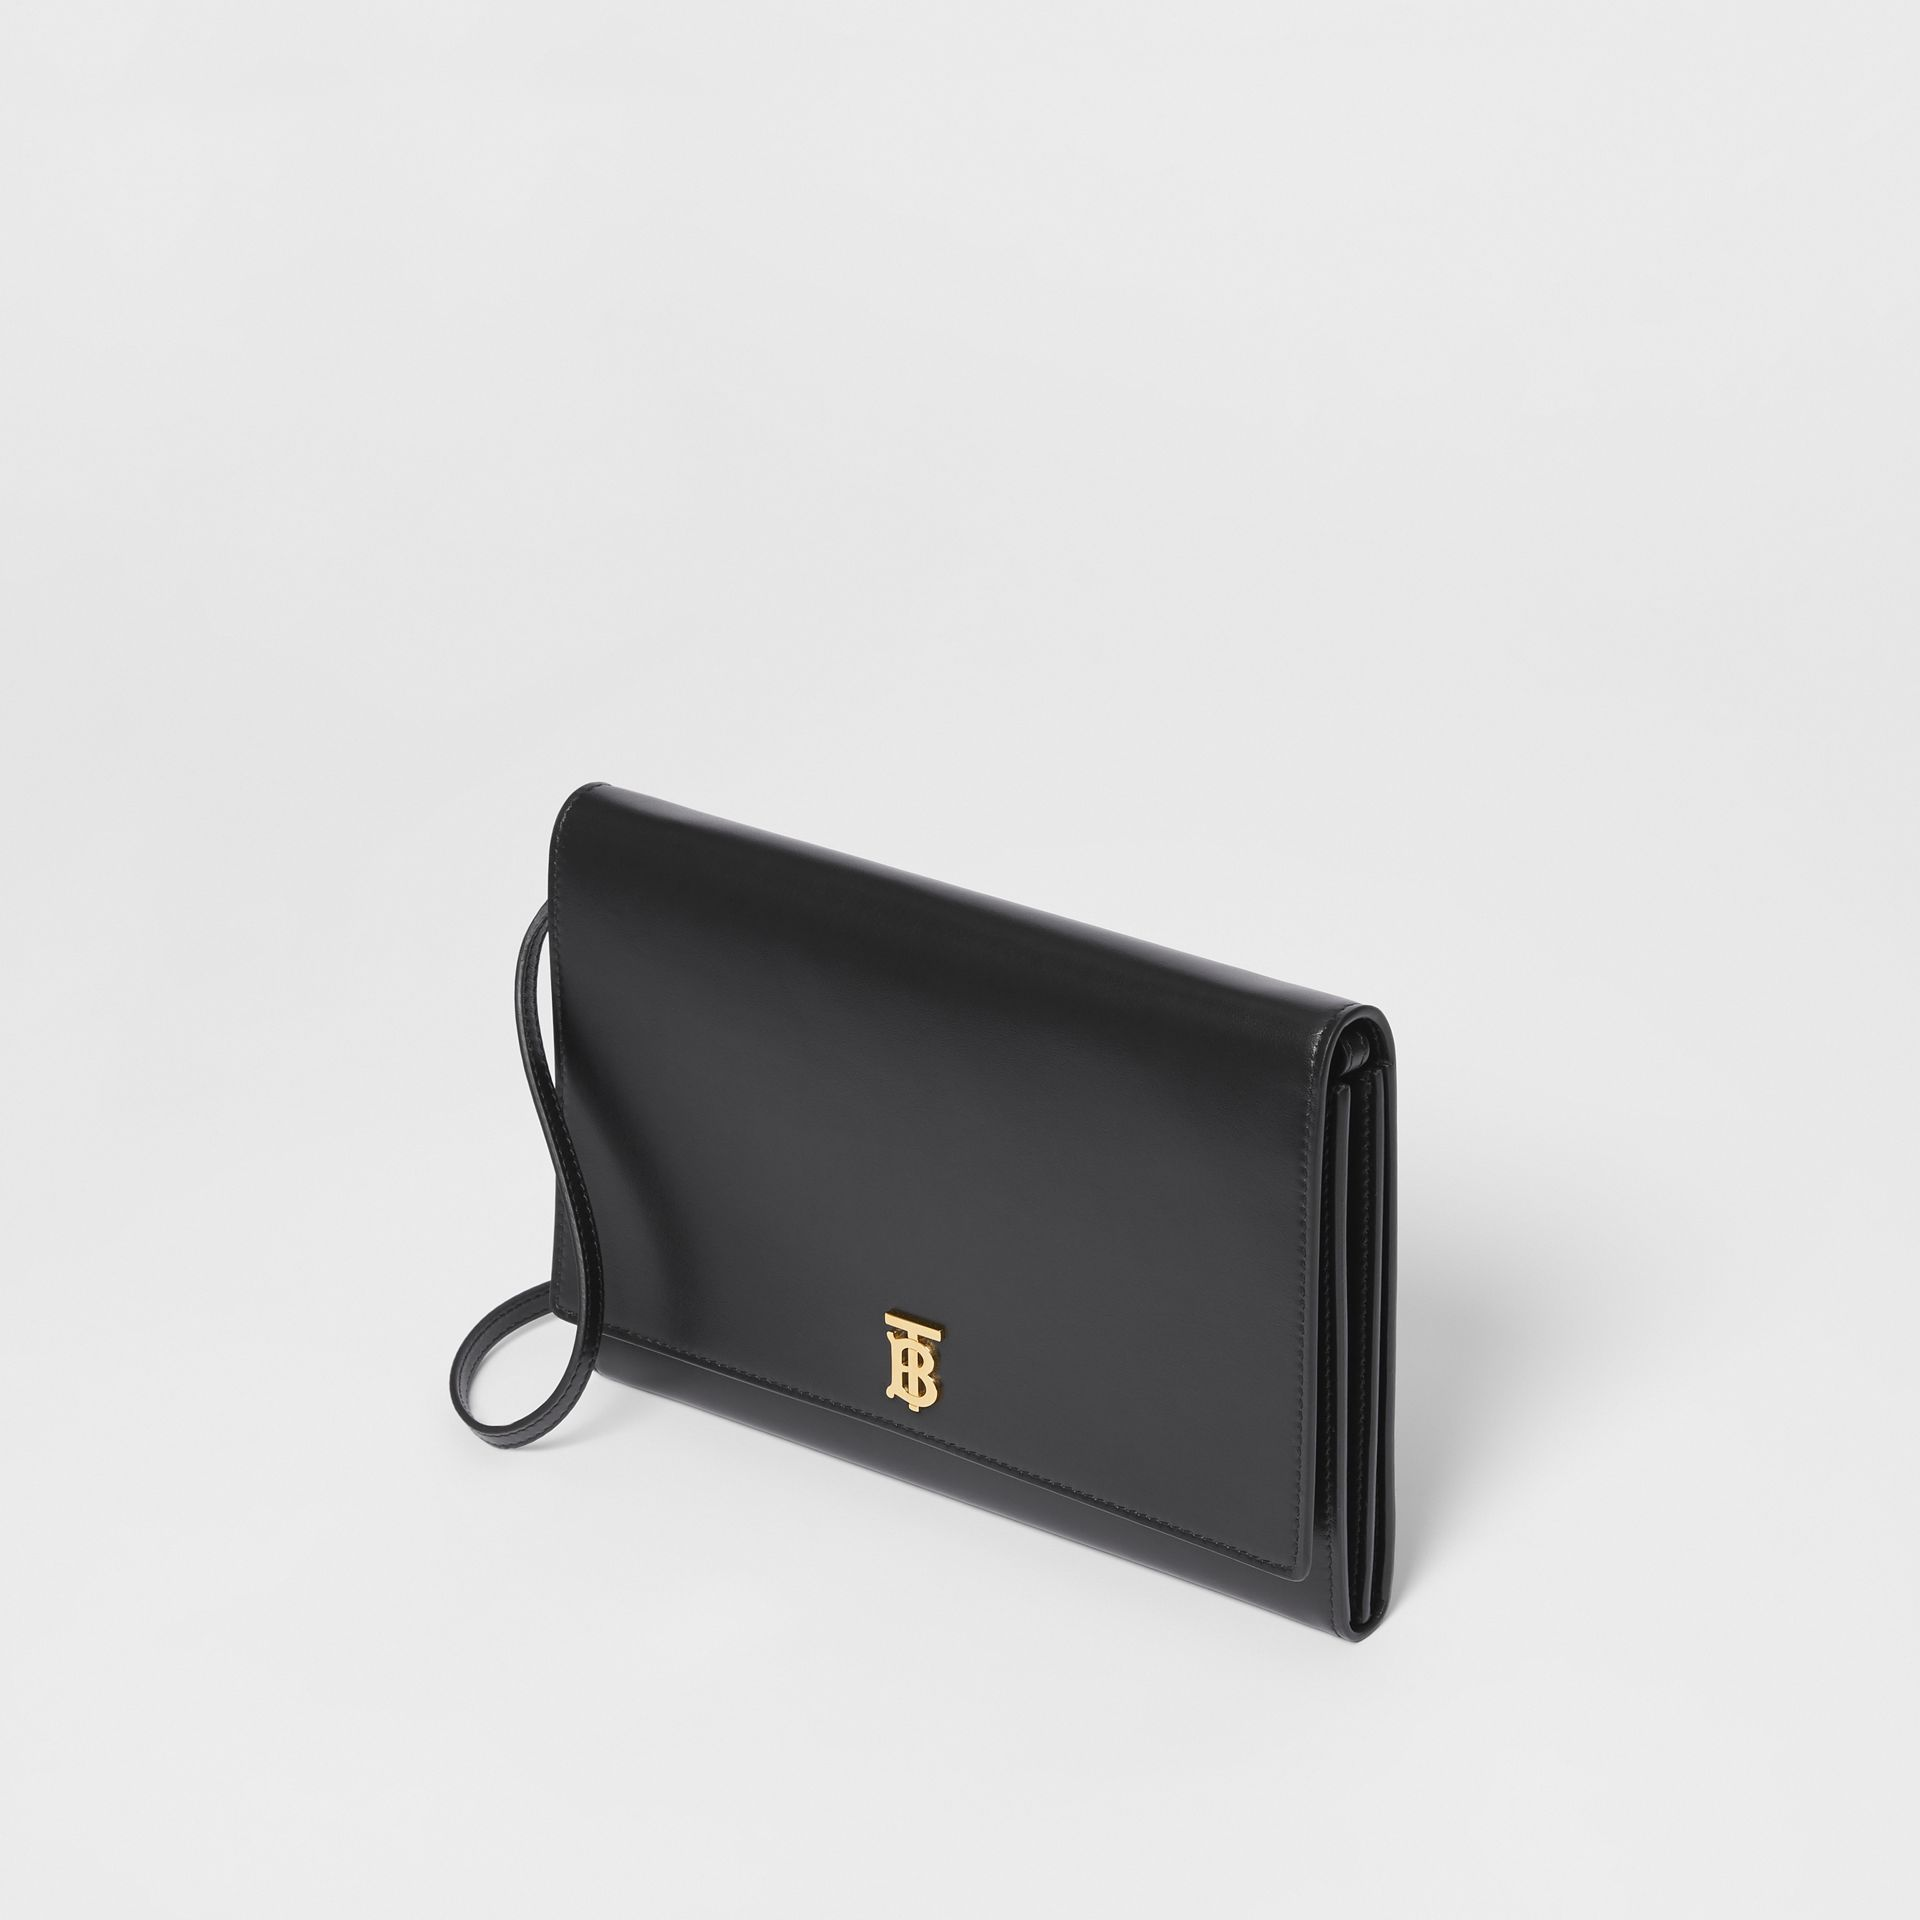 Monogram Motif Leather Bag with Detachable Strap in Black - Women | Burberry Australia - gallery image 3